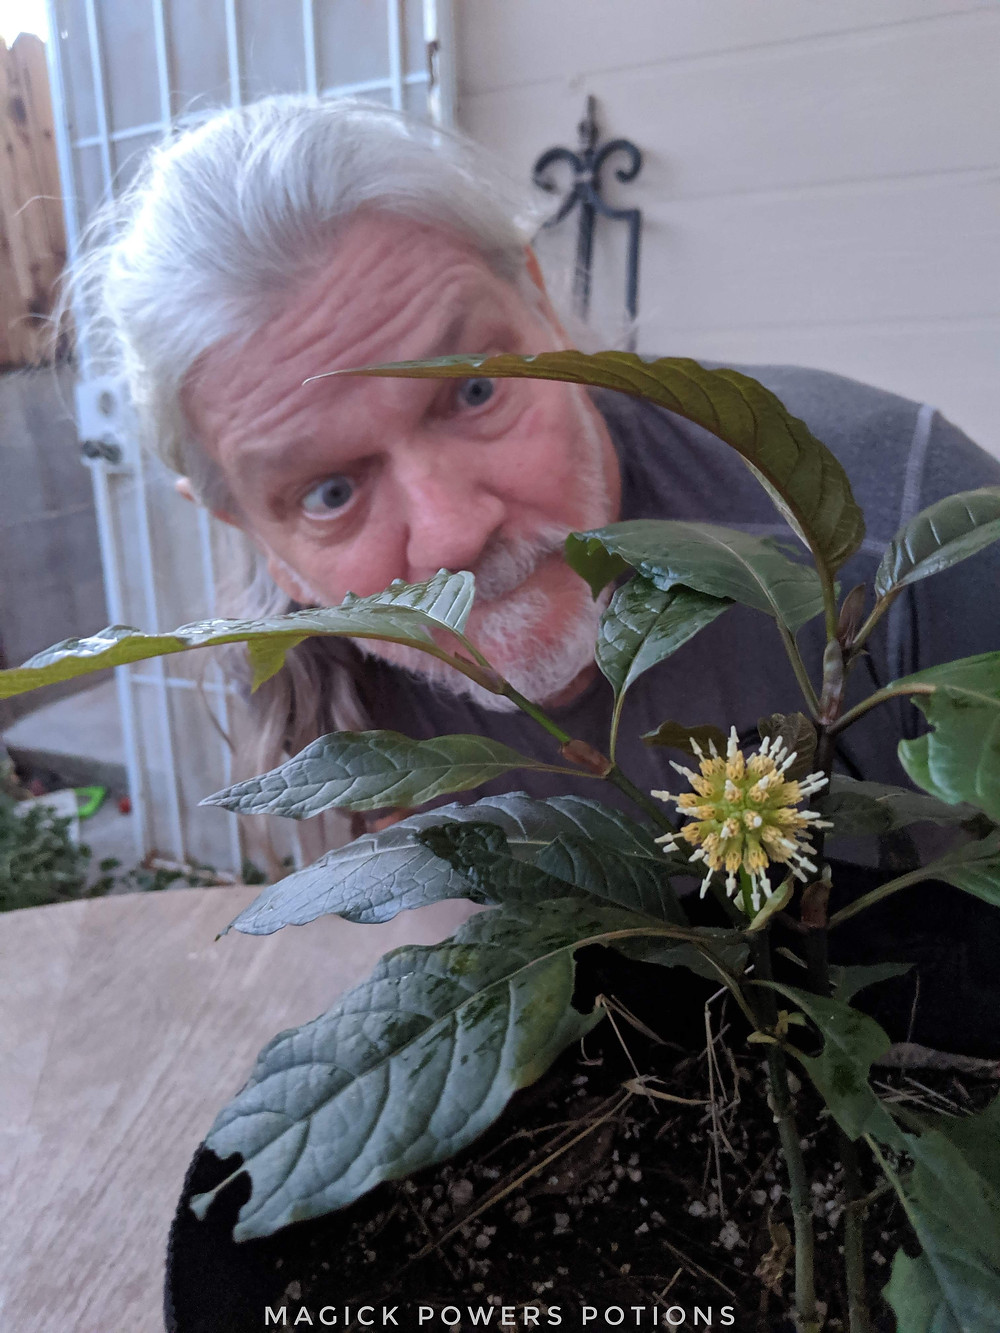 Glenn Bradford got a special blessing from the kratom gods when one of his purchases began growing an incredibly rare flower/seed pod.